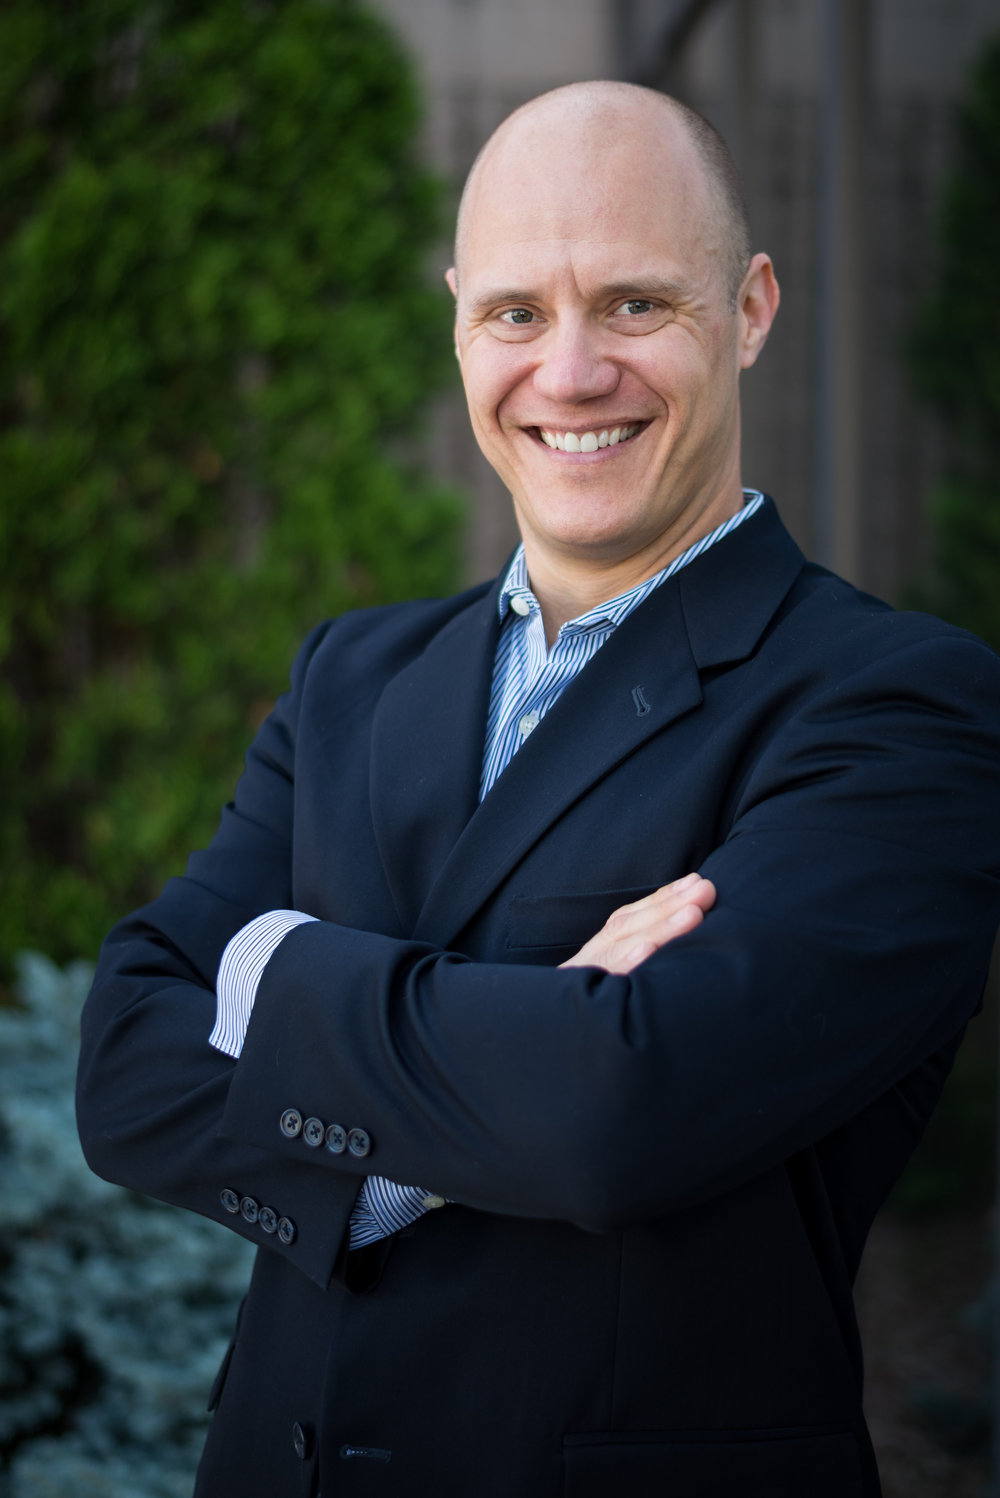 Erik Johnson, Commercial Lending Expert